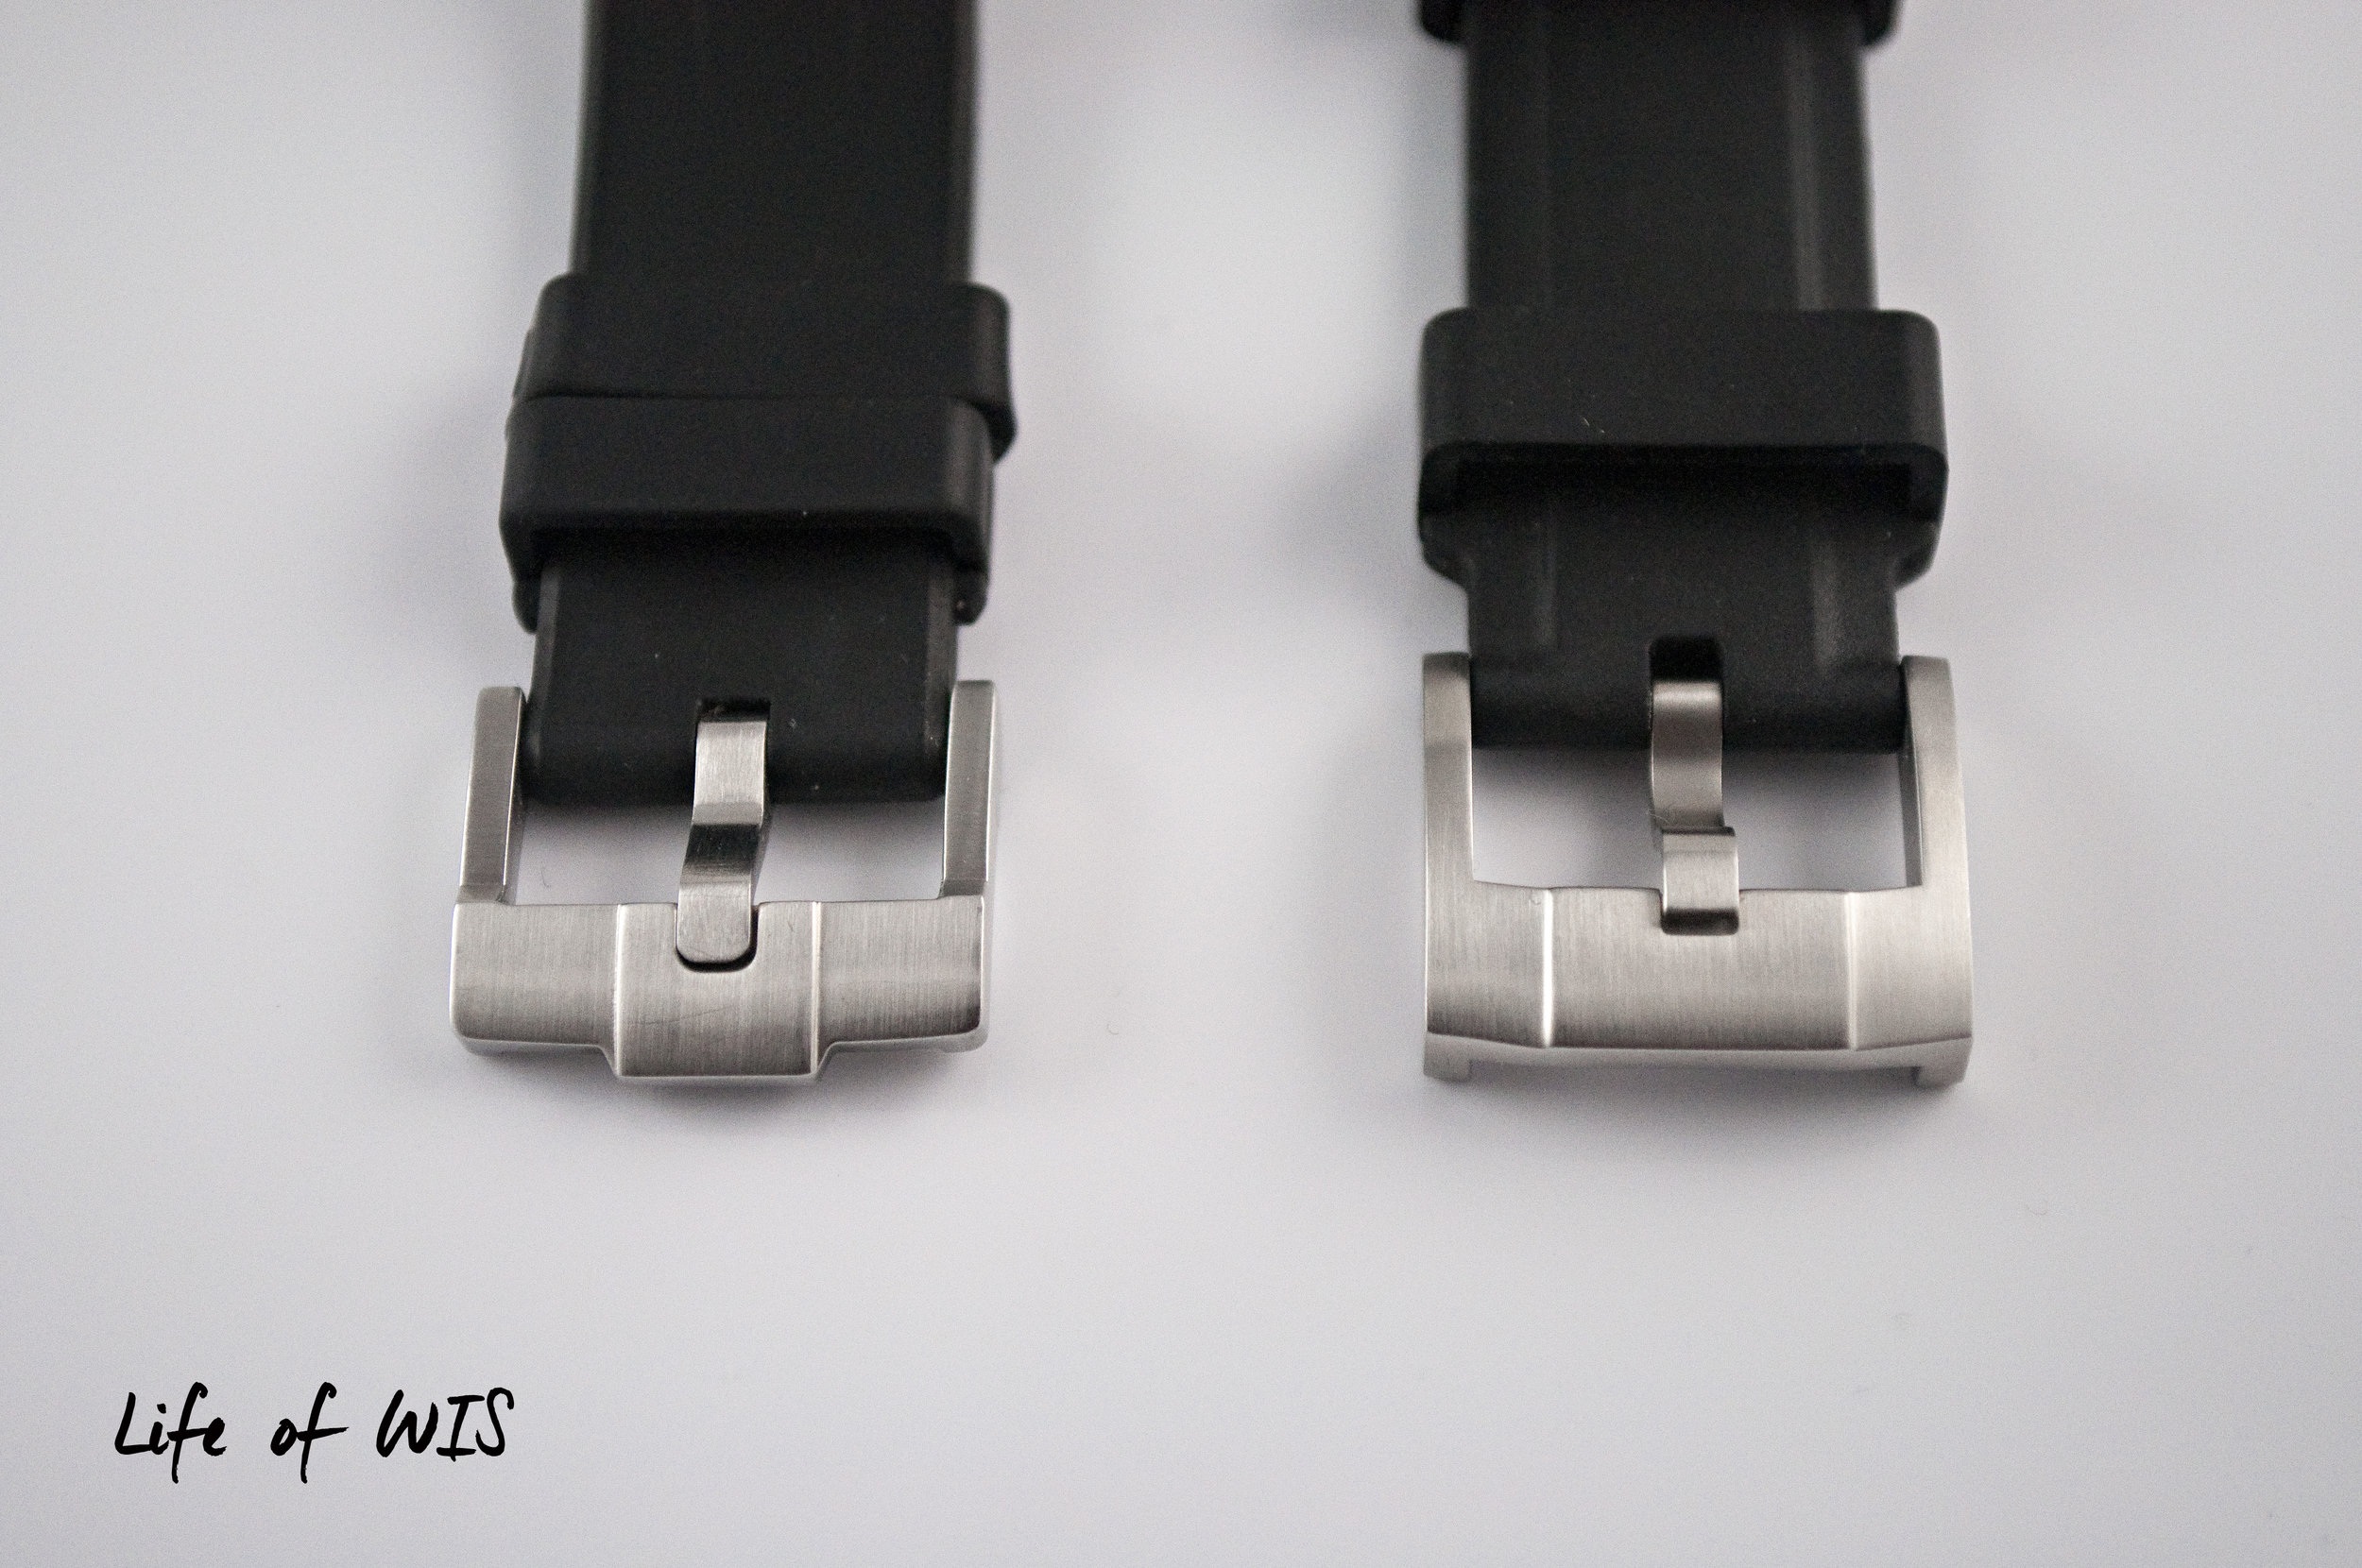 Sleeker Rubber B tang buckle on the left. The more secure Everest screw-in tang buckle on the right.